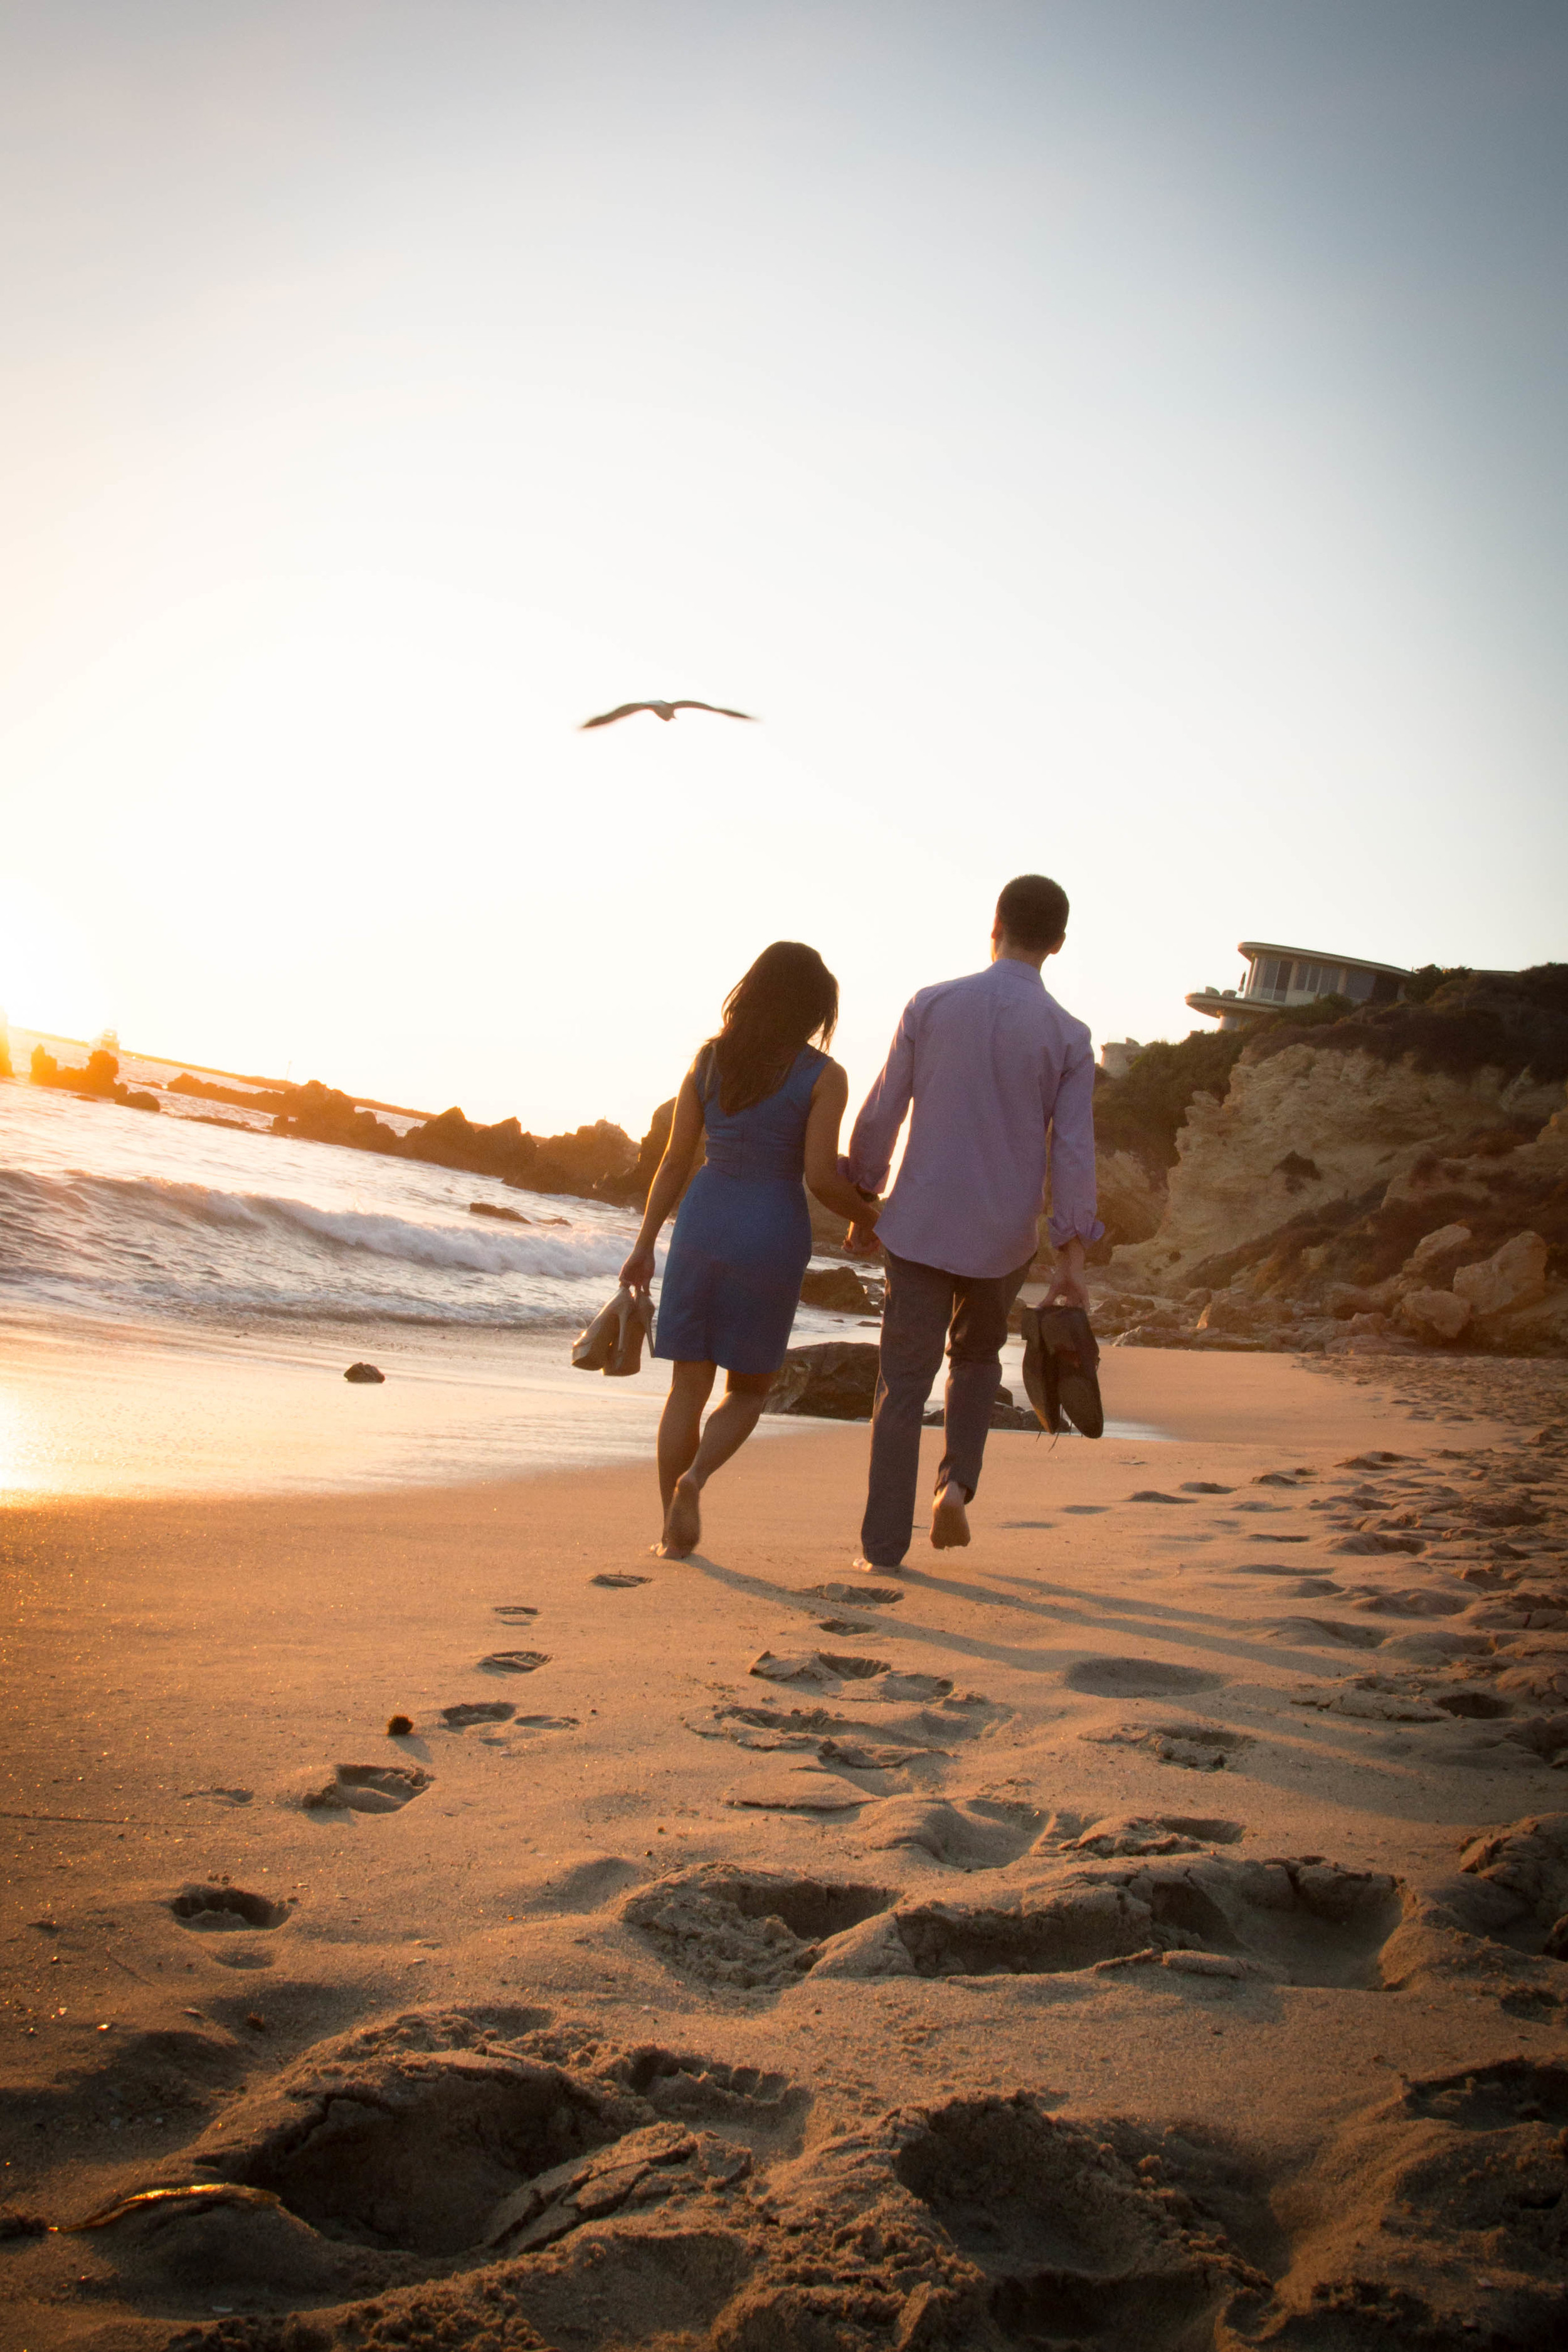 Warm walks on the beach at sunset with the waves crashing can bring happiness to anyone, well maybe not vampires.